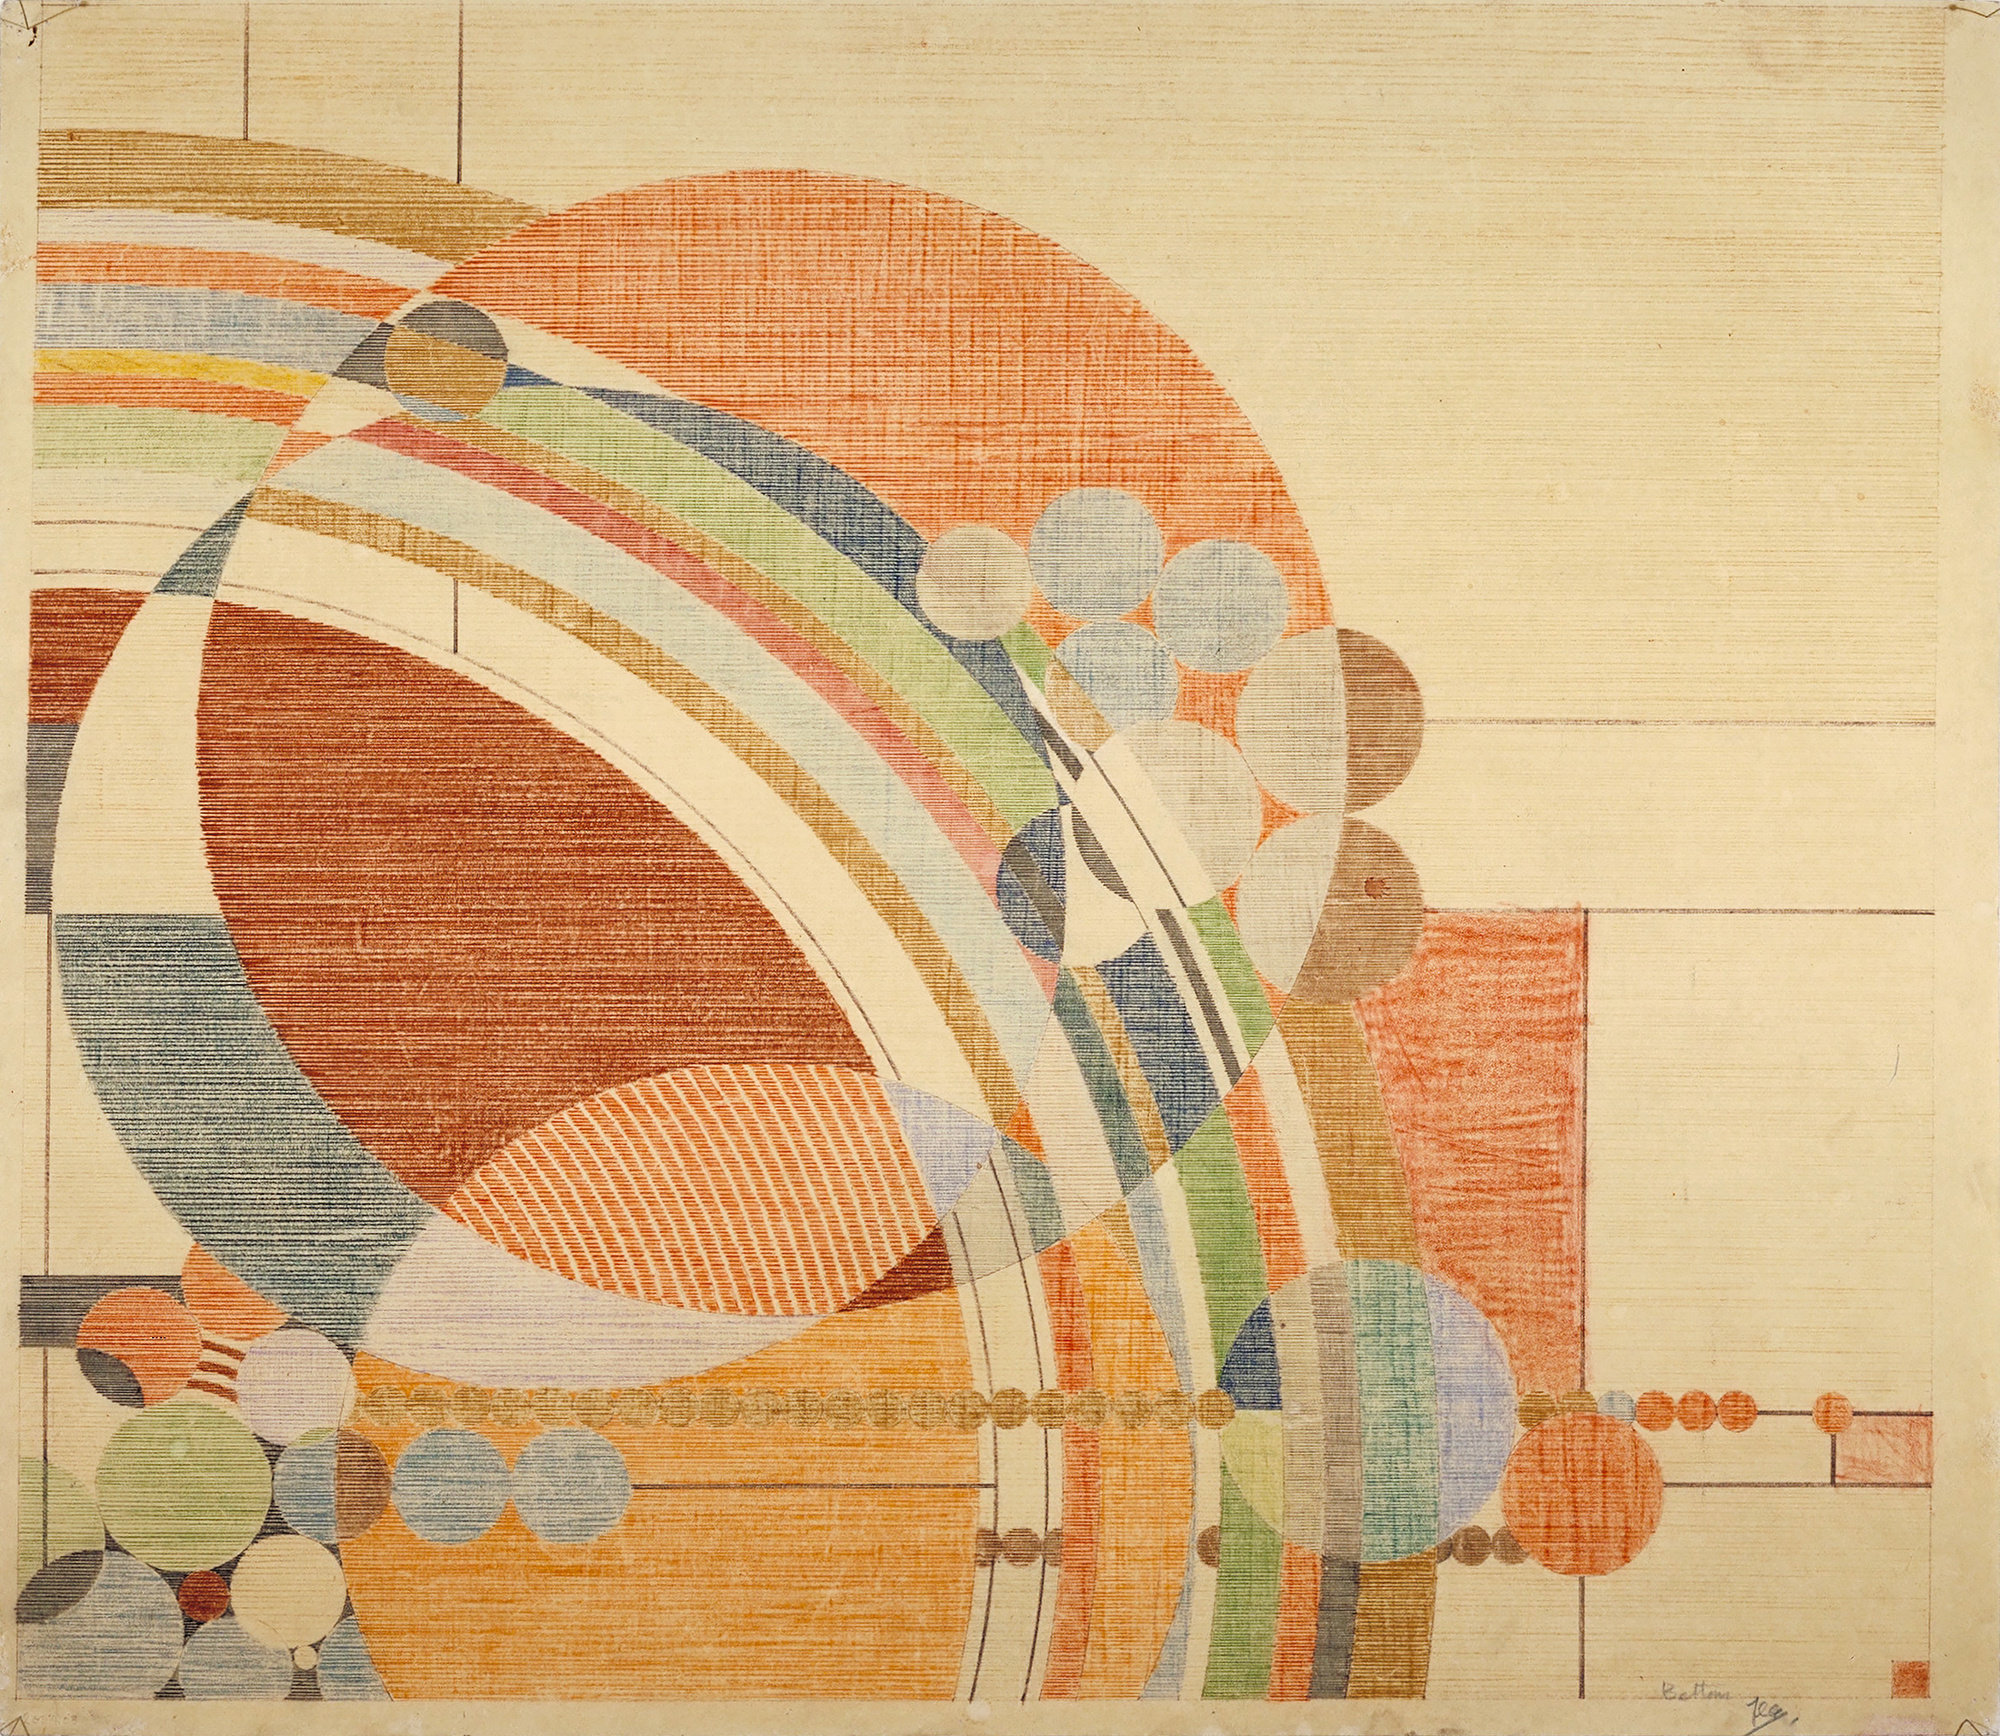 Frank Lloyd Wright. Portada de Magazine, 1926. The Museum of Modern Art | Avery Architectural & Fine Arts Library, Columbia University, New York